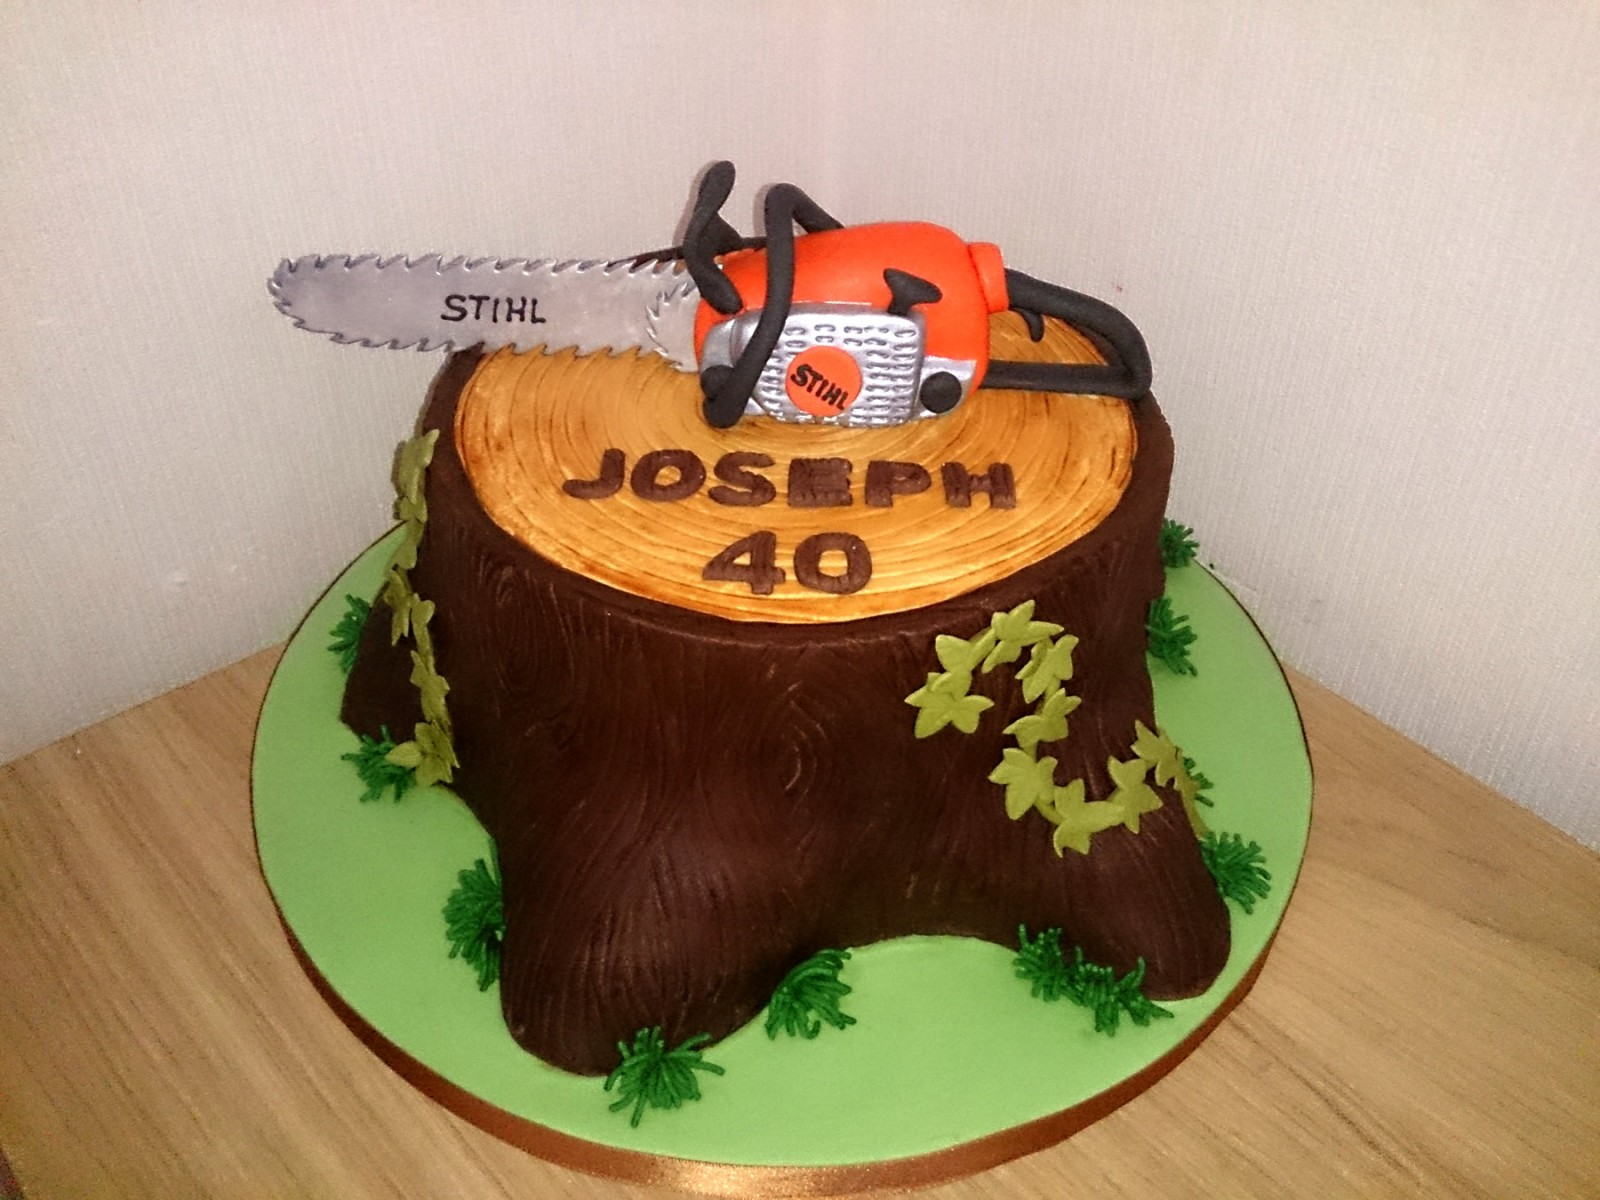 Tree Surgeon S Novelty Birthday Cake Susie S Cakes